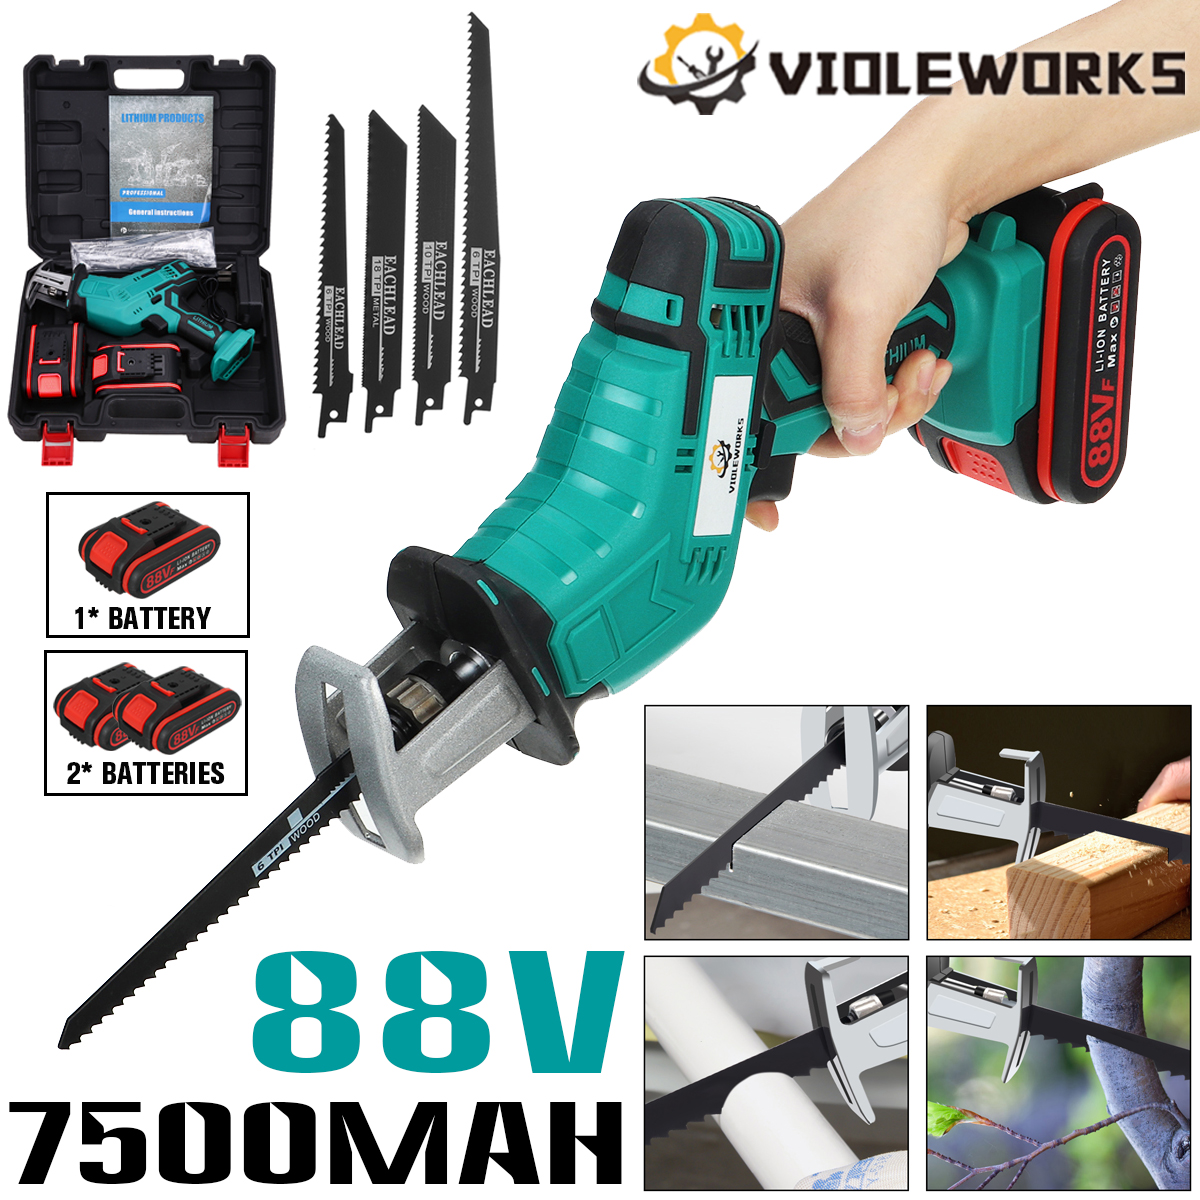 88V 7500mAh Battery Cordless Reciprocating Saw Wood Metal Cutting Saber Saw Portable Electric Saw Rechargeable Power Tool